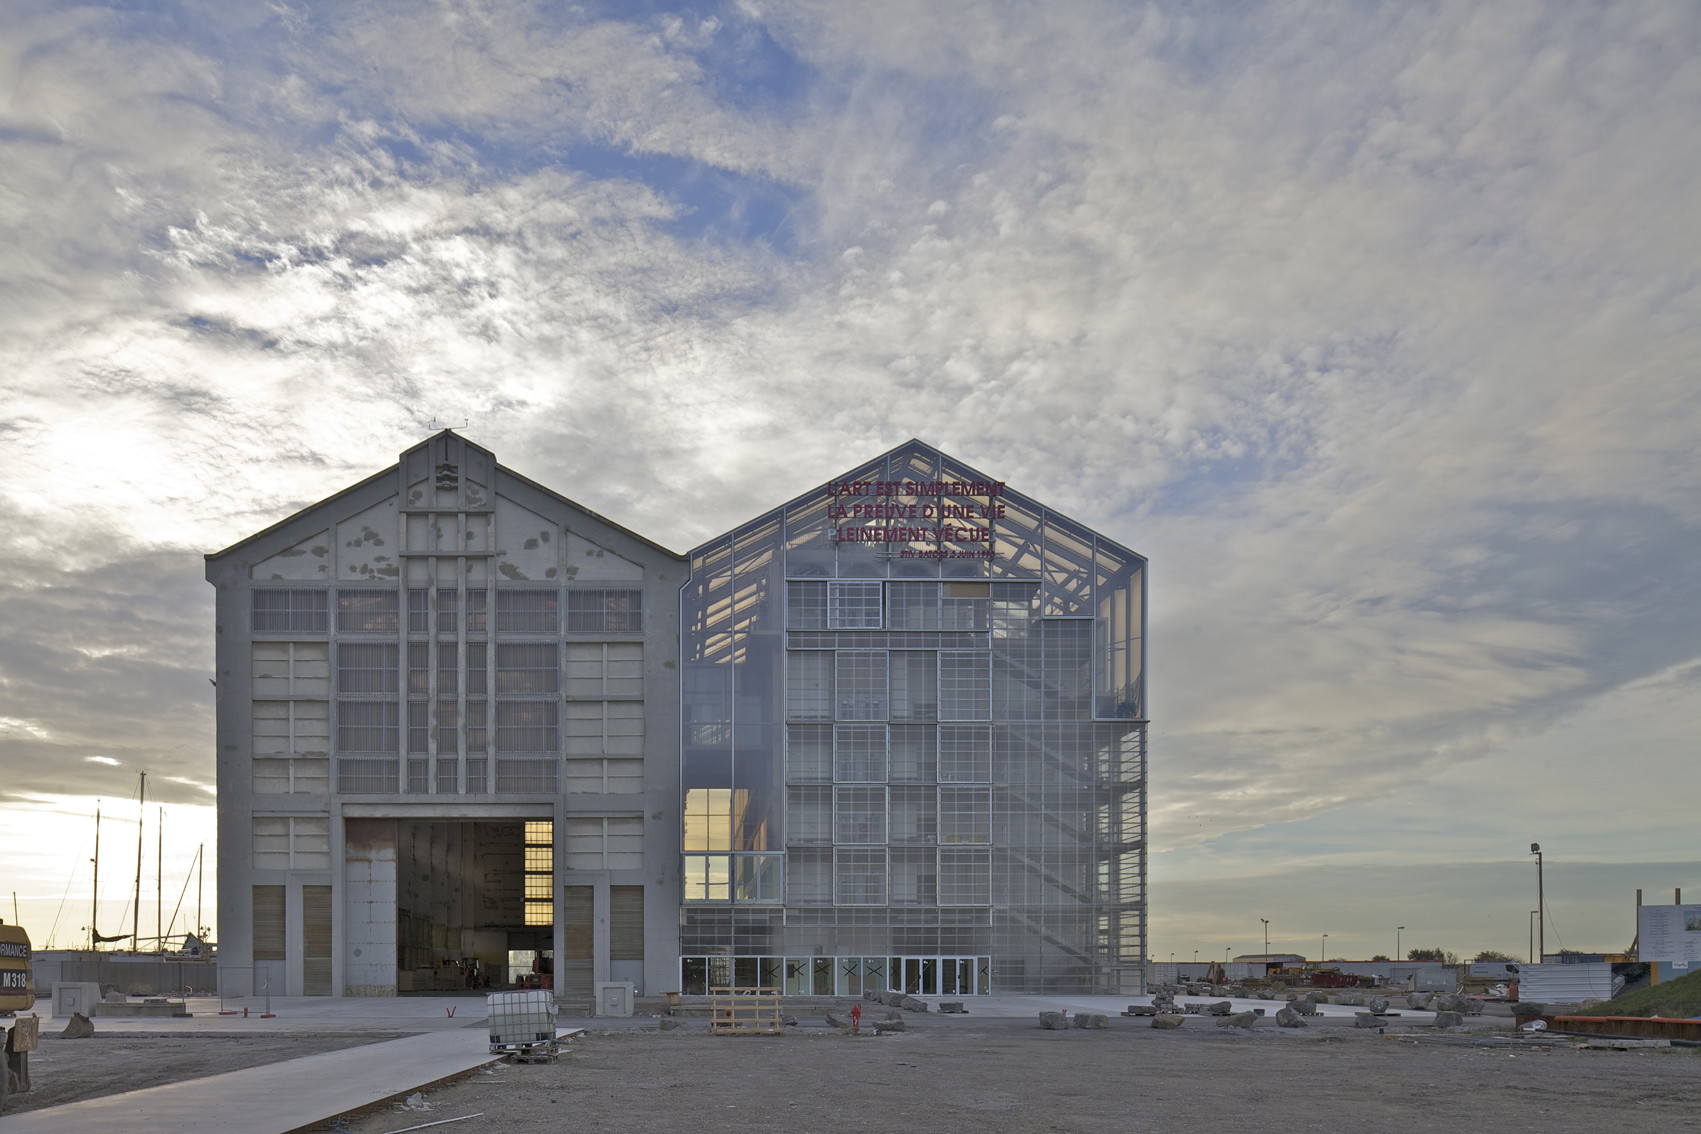 Lacaton & Vassal's Lesson in Building Modestly, FRAC Dunkerque / Lacaton & Vassal. Image © Philippe Ruault